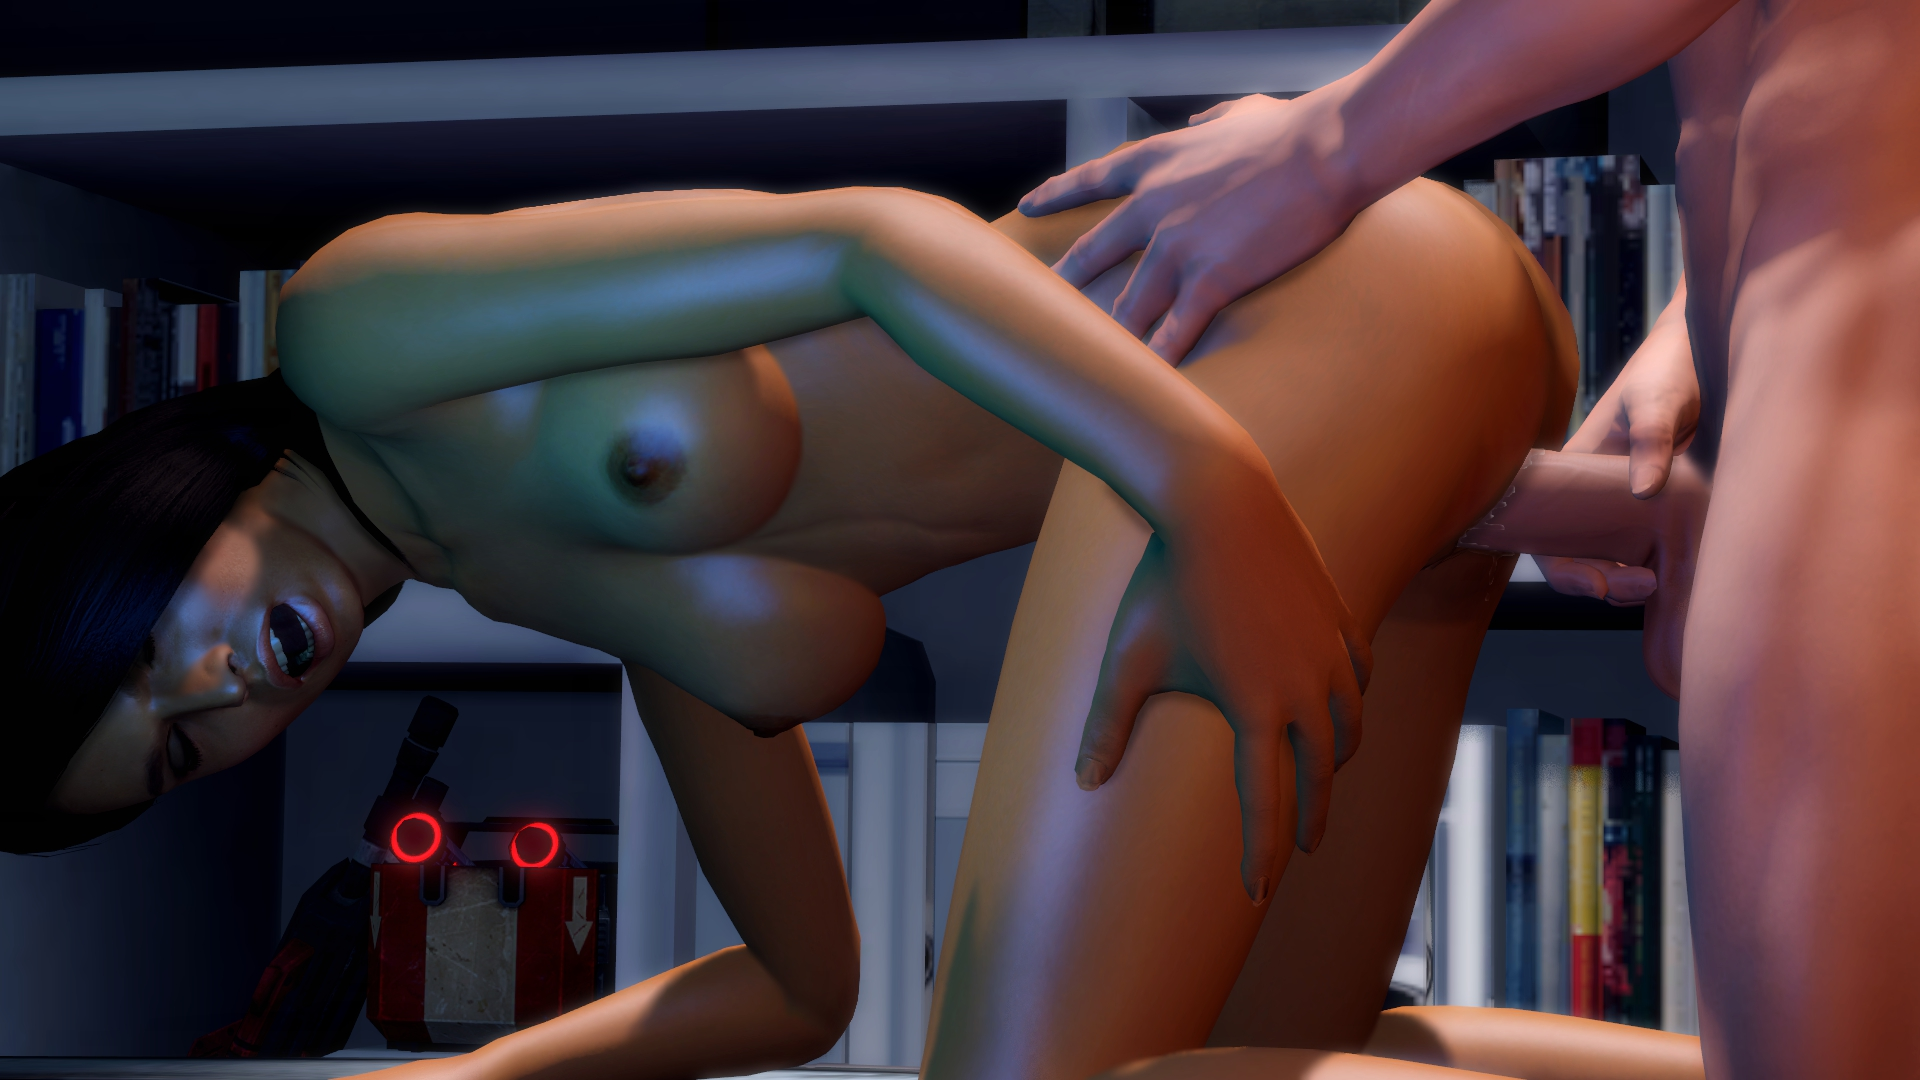 Mass effect 3 ashley sex xxx softcore pictures